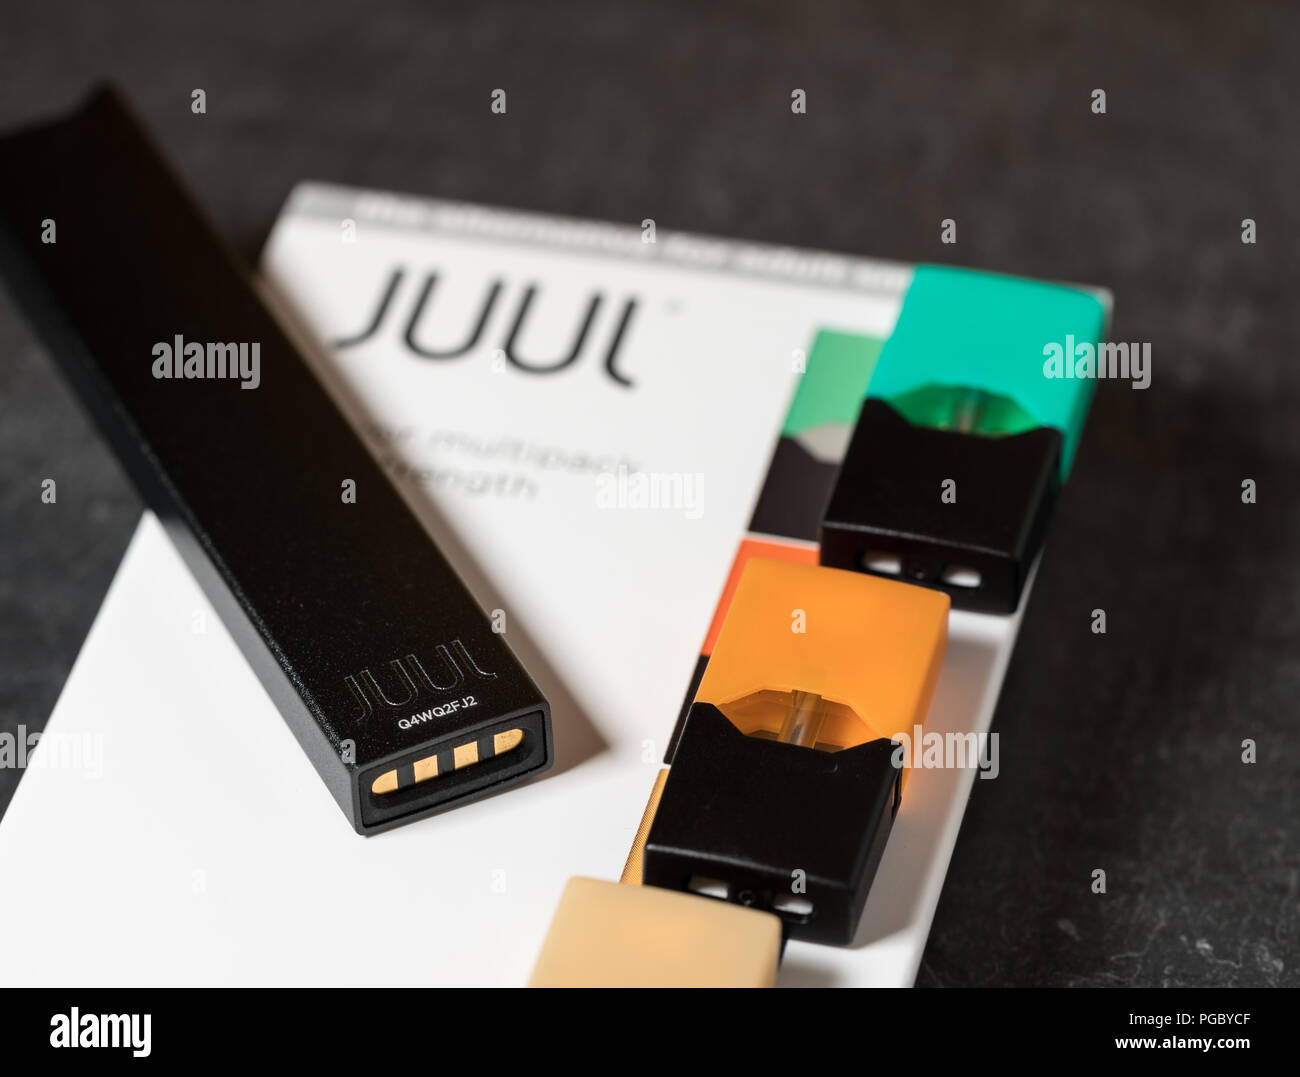 Box holding JUUL nicotine dispenser and pods Stock Photo